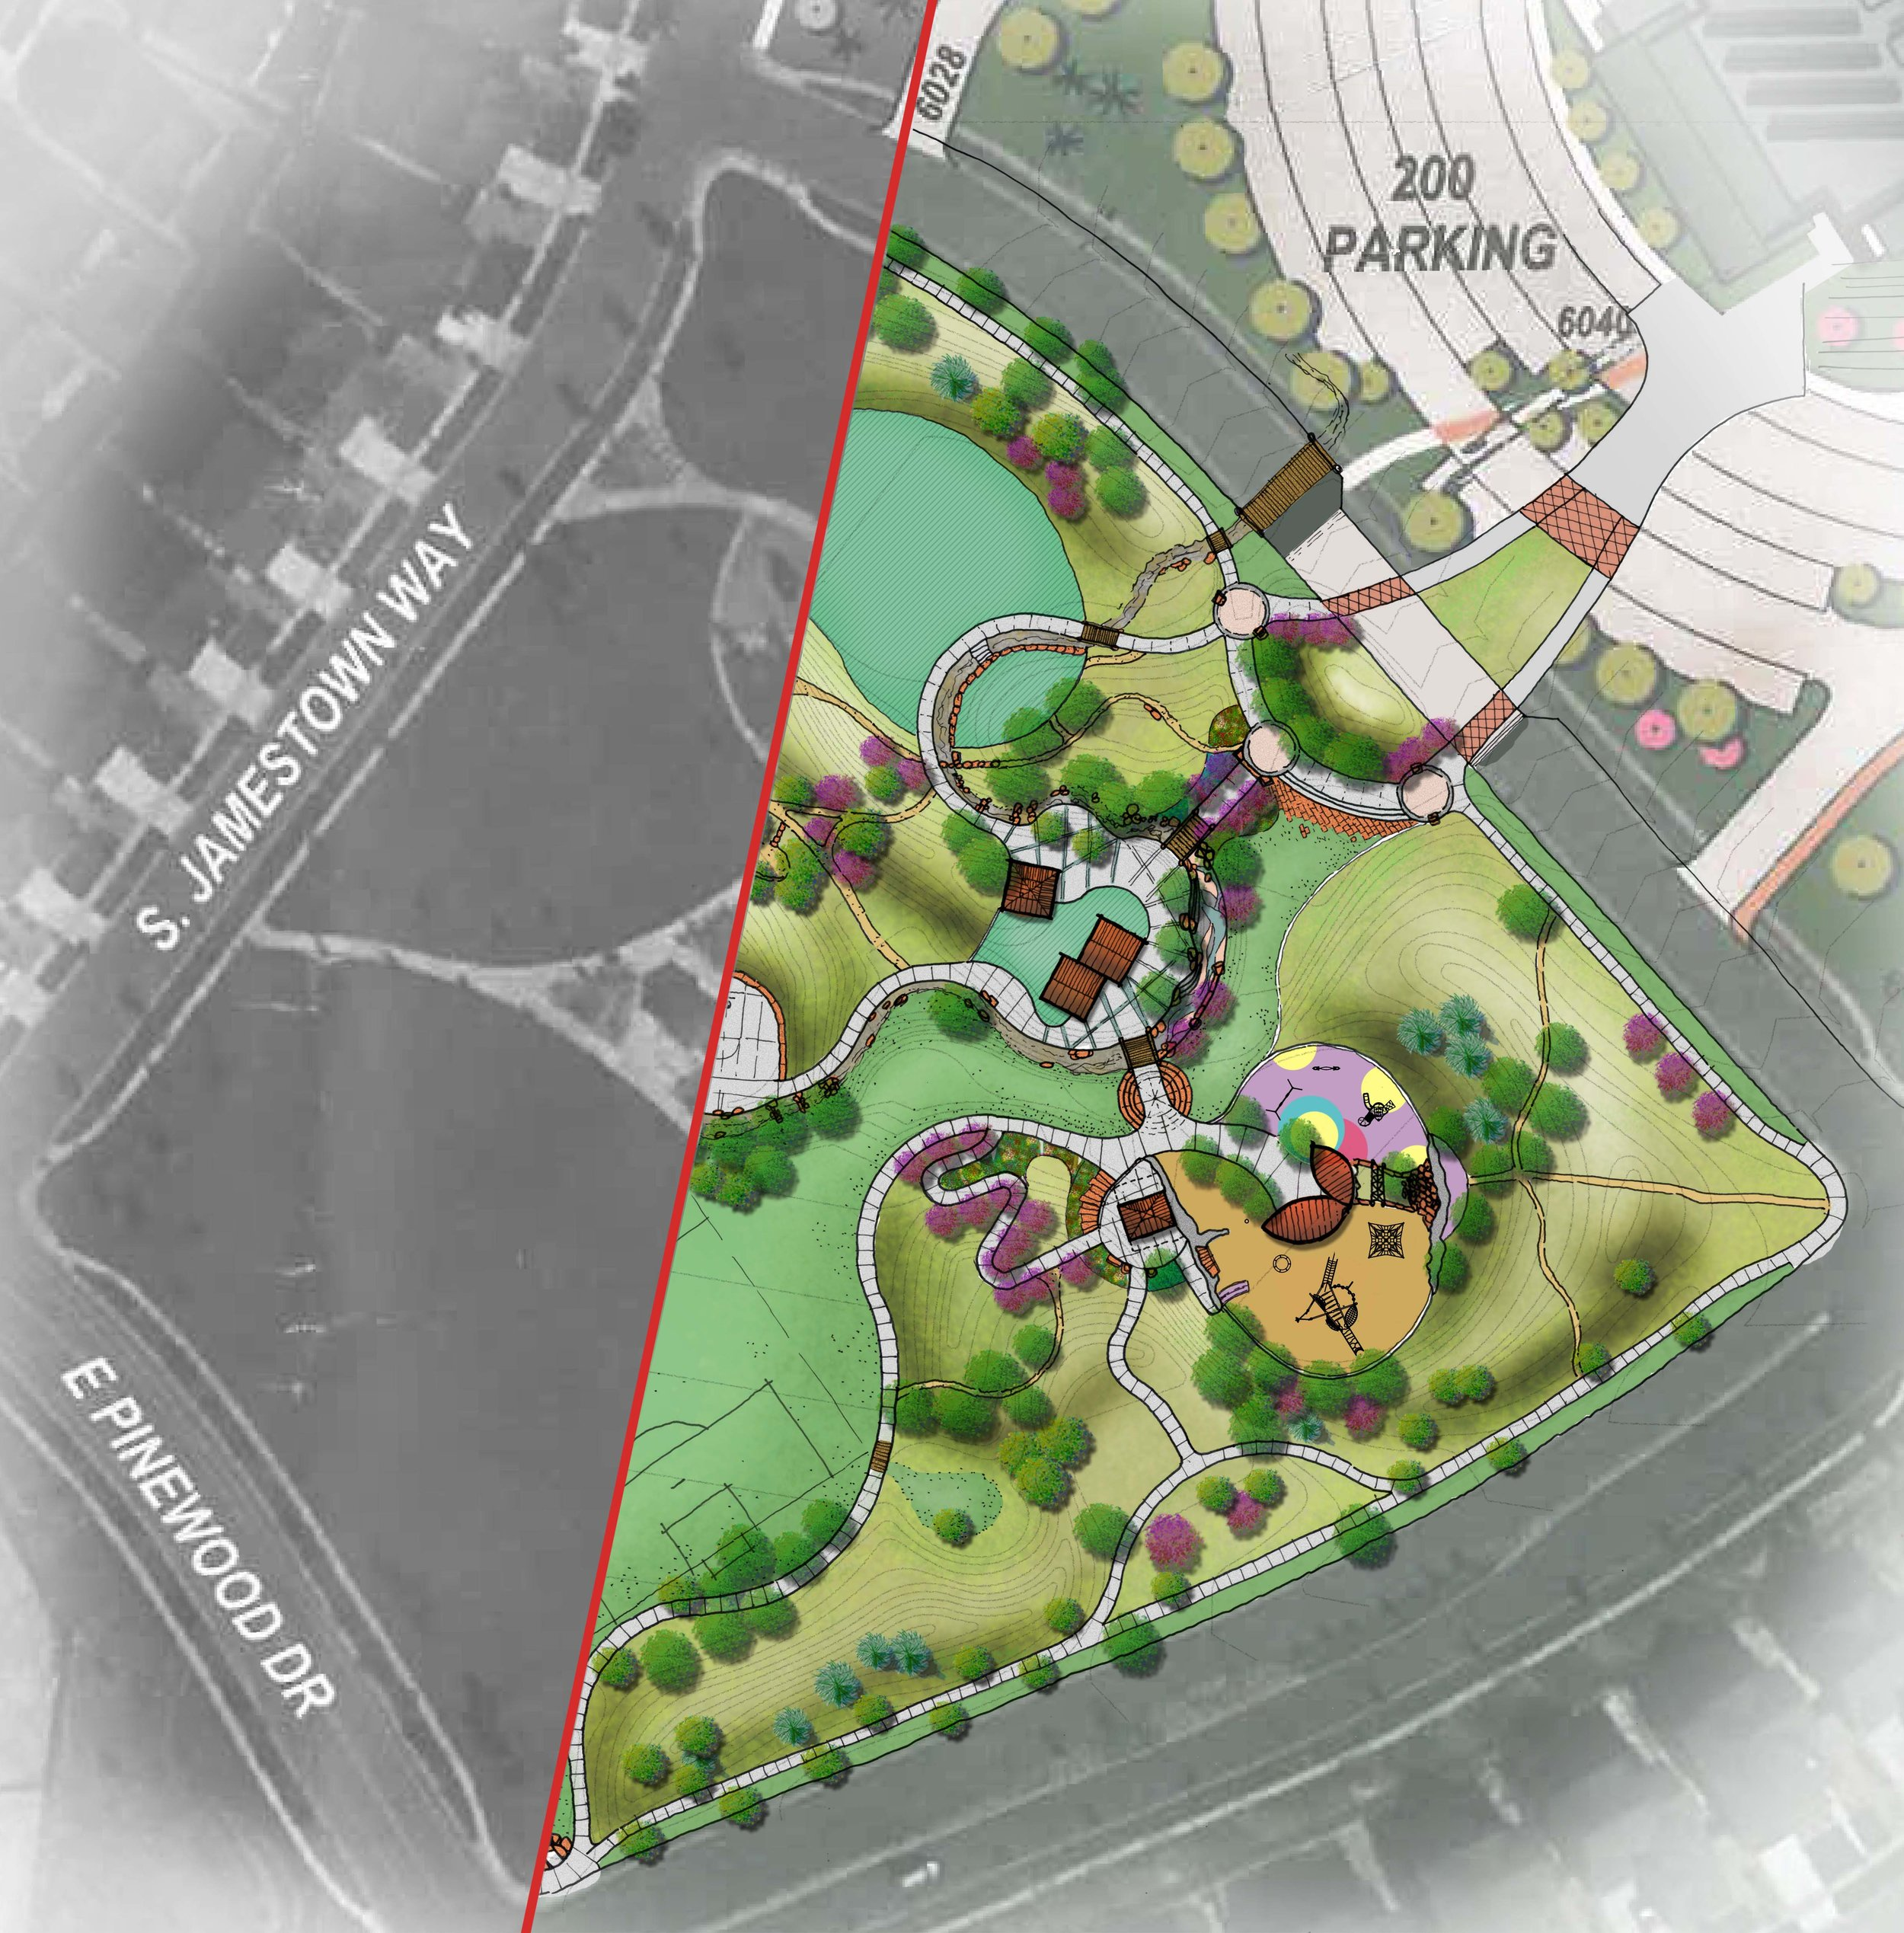 GOCO grant funds helped provide planning design for the redevelopment at Wheatlands Park